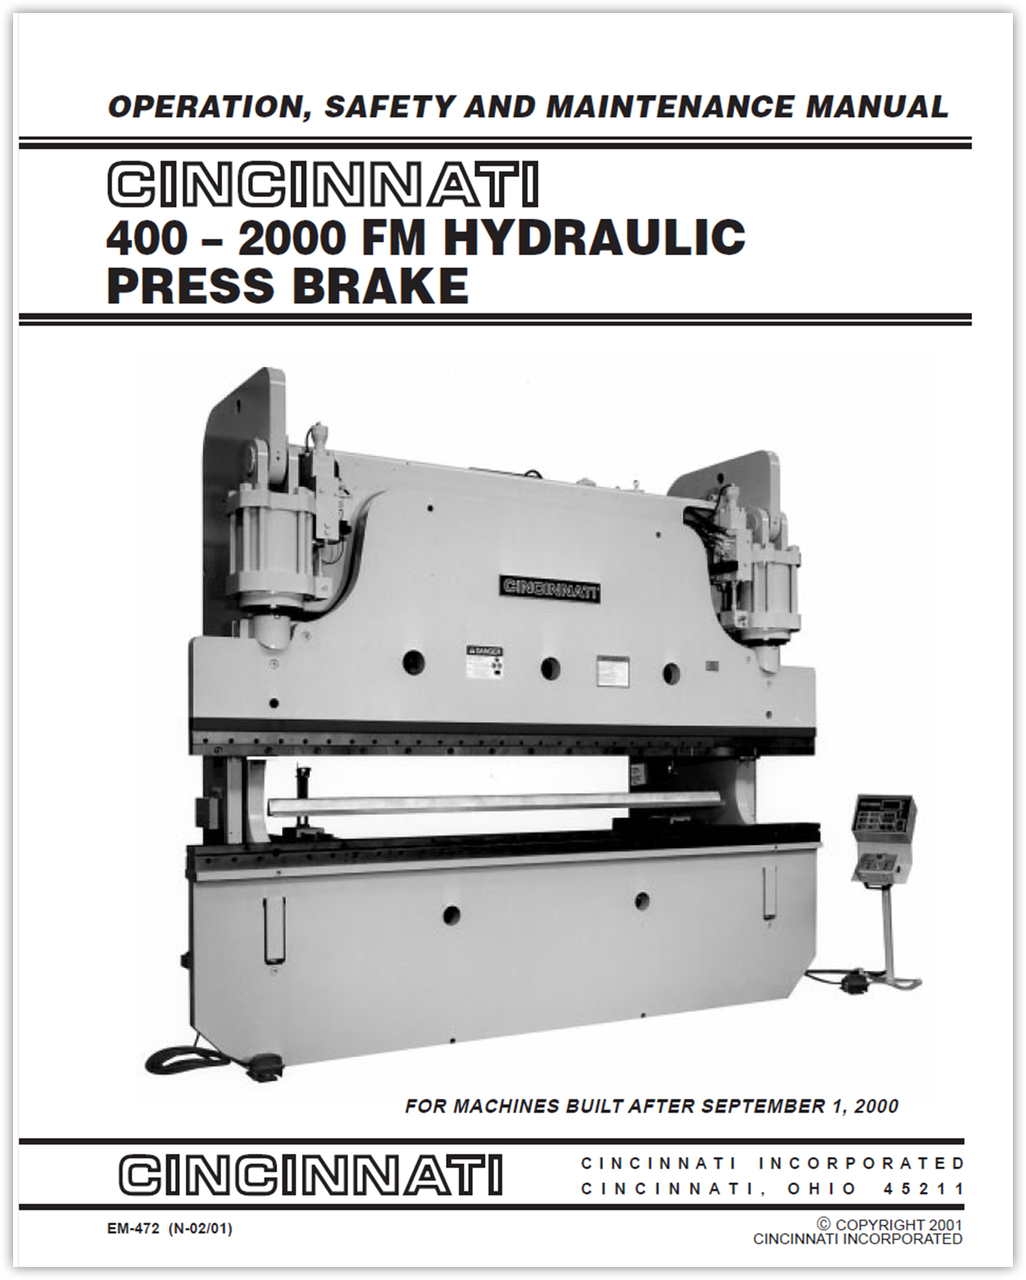 EM-472 (N-02-01) 400-2000 FM Hydraulic Press Brake Operation, Safety and Maintenance Manual for Machines Built After September 1, 2000